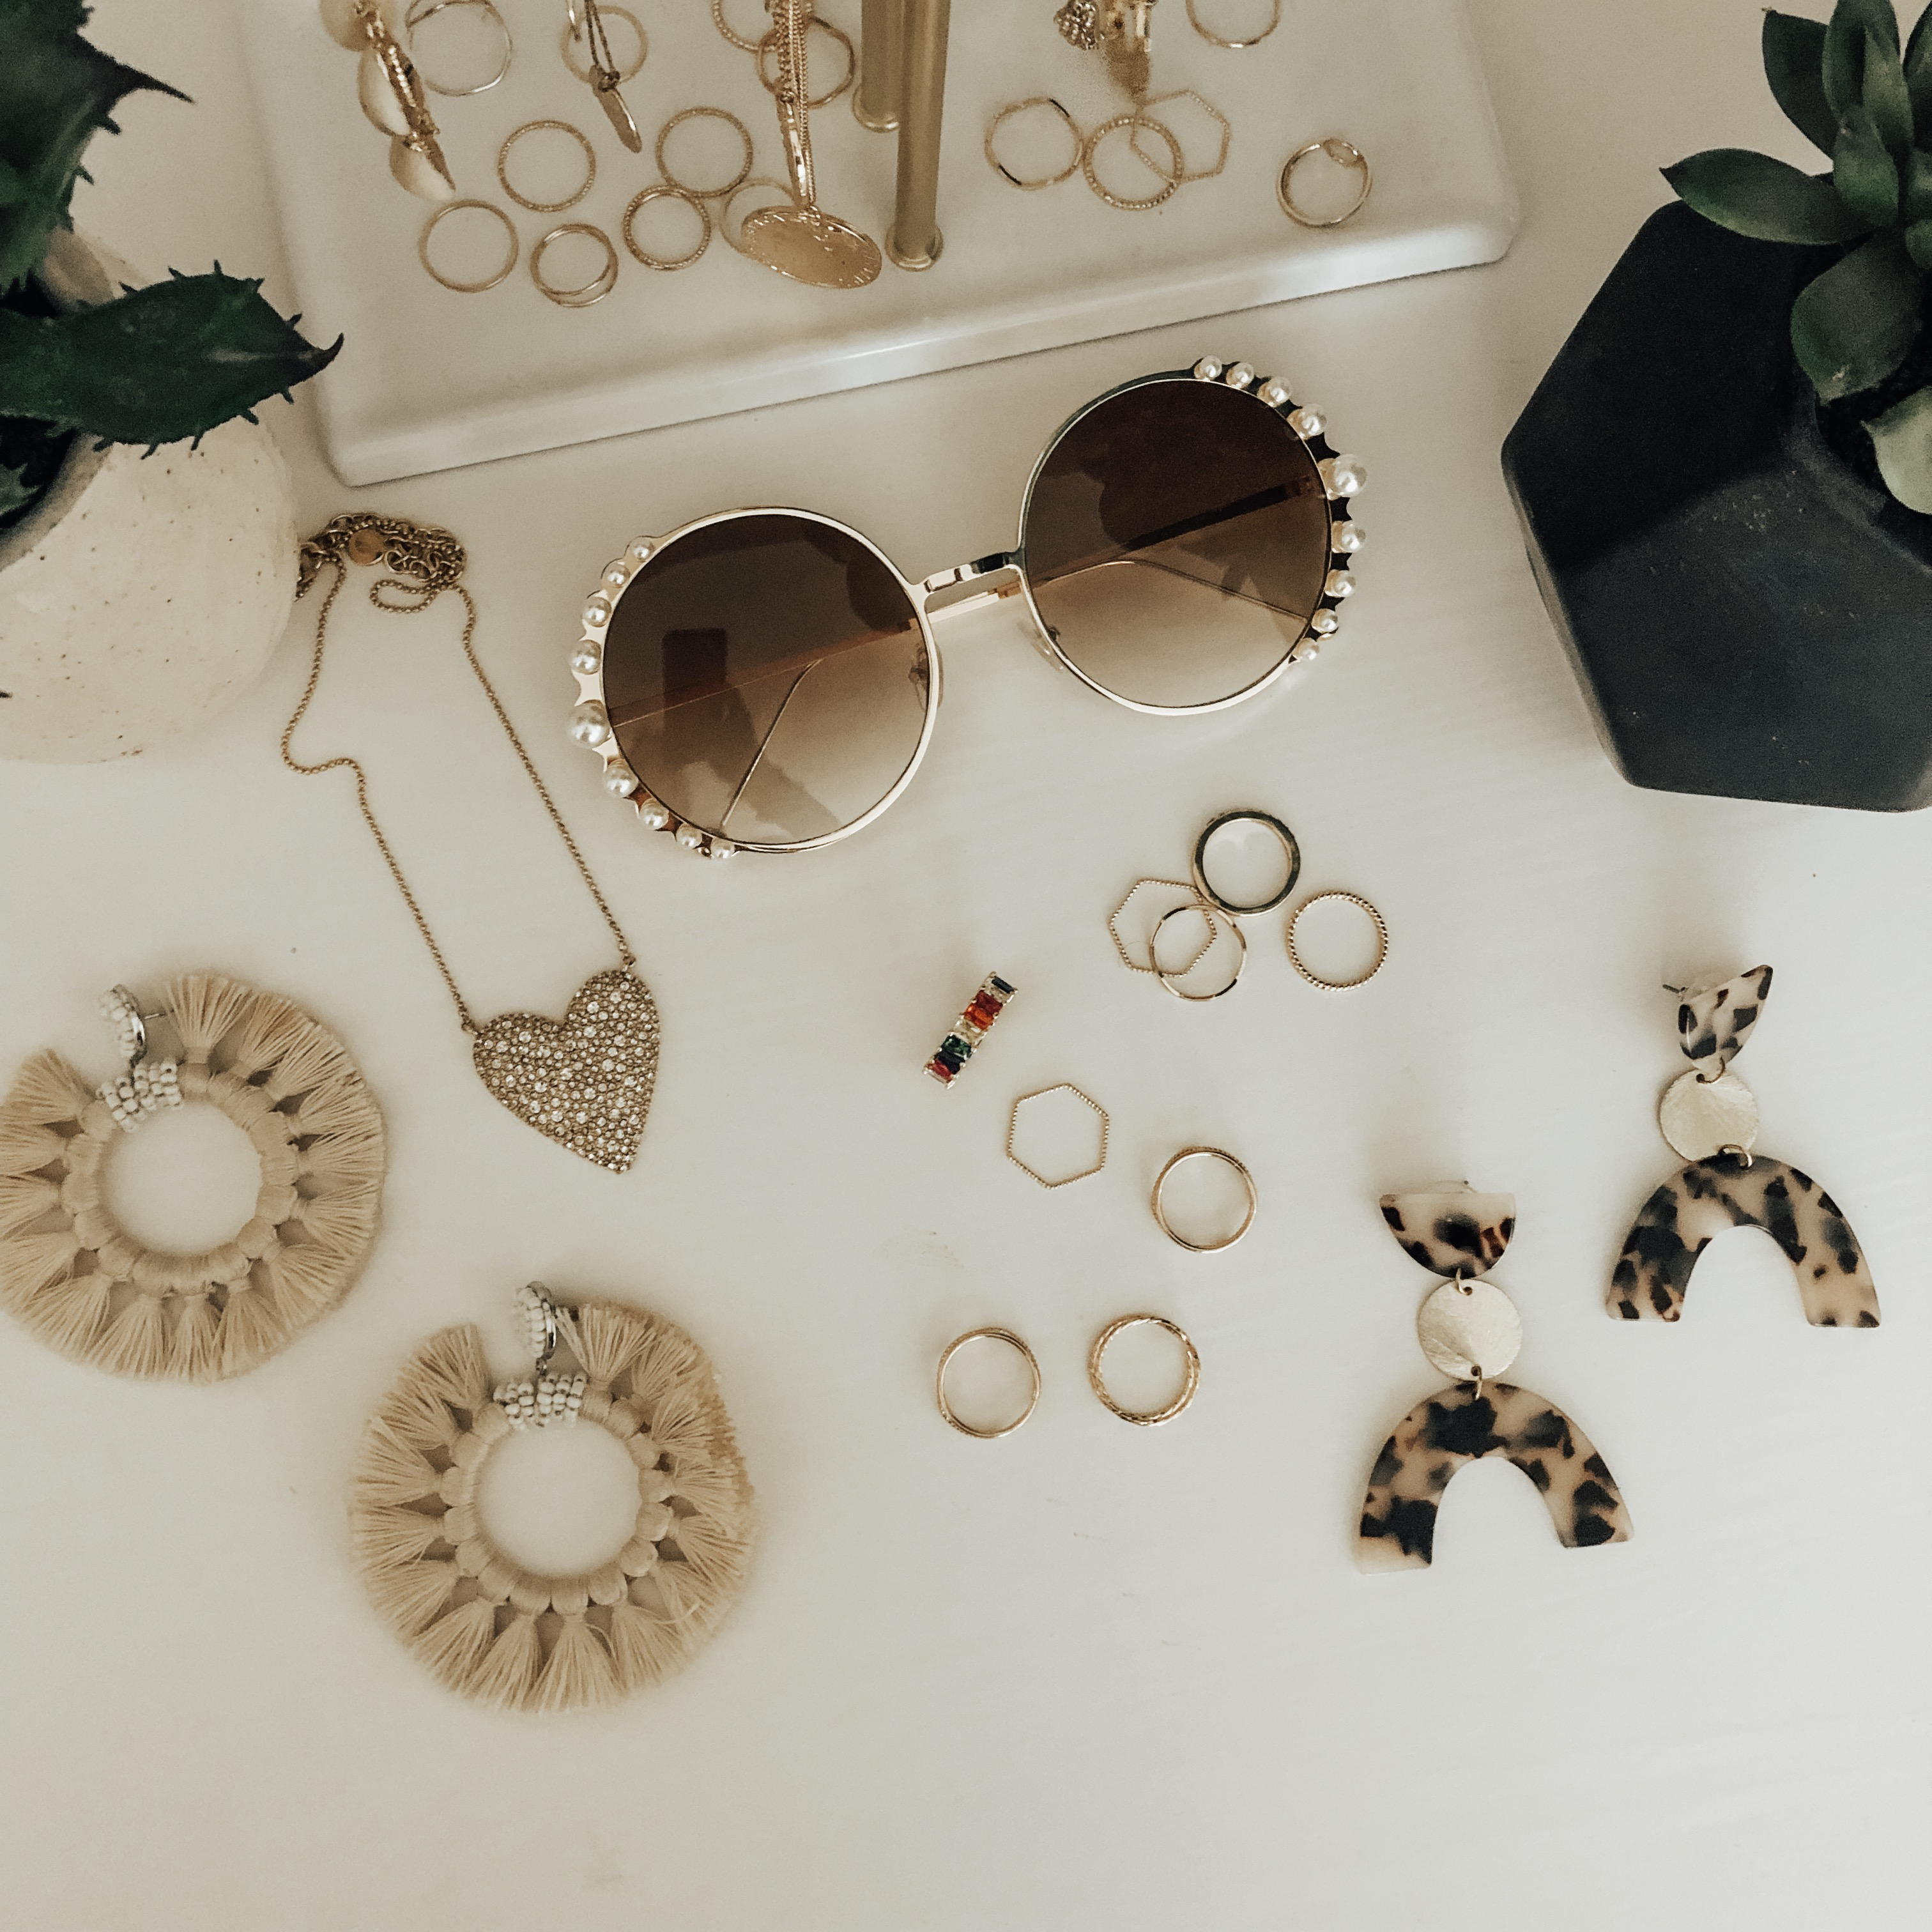 ALL THE CURRENT JEWELRY TRENDS + THE BEST AFFORDABLE DUPES- Jaclyn De Leon Style + I'm dishing on all my favorite current jewelry trends from statement earrins to delicate layering necklaces and finding all the best designer dupes!